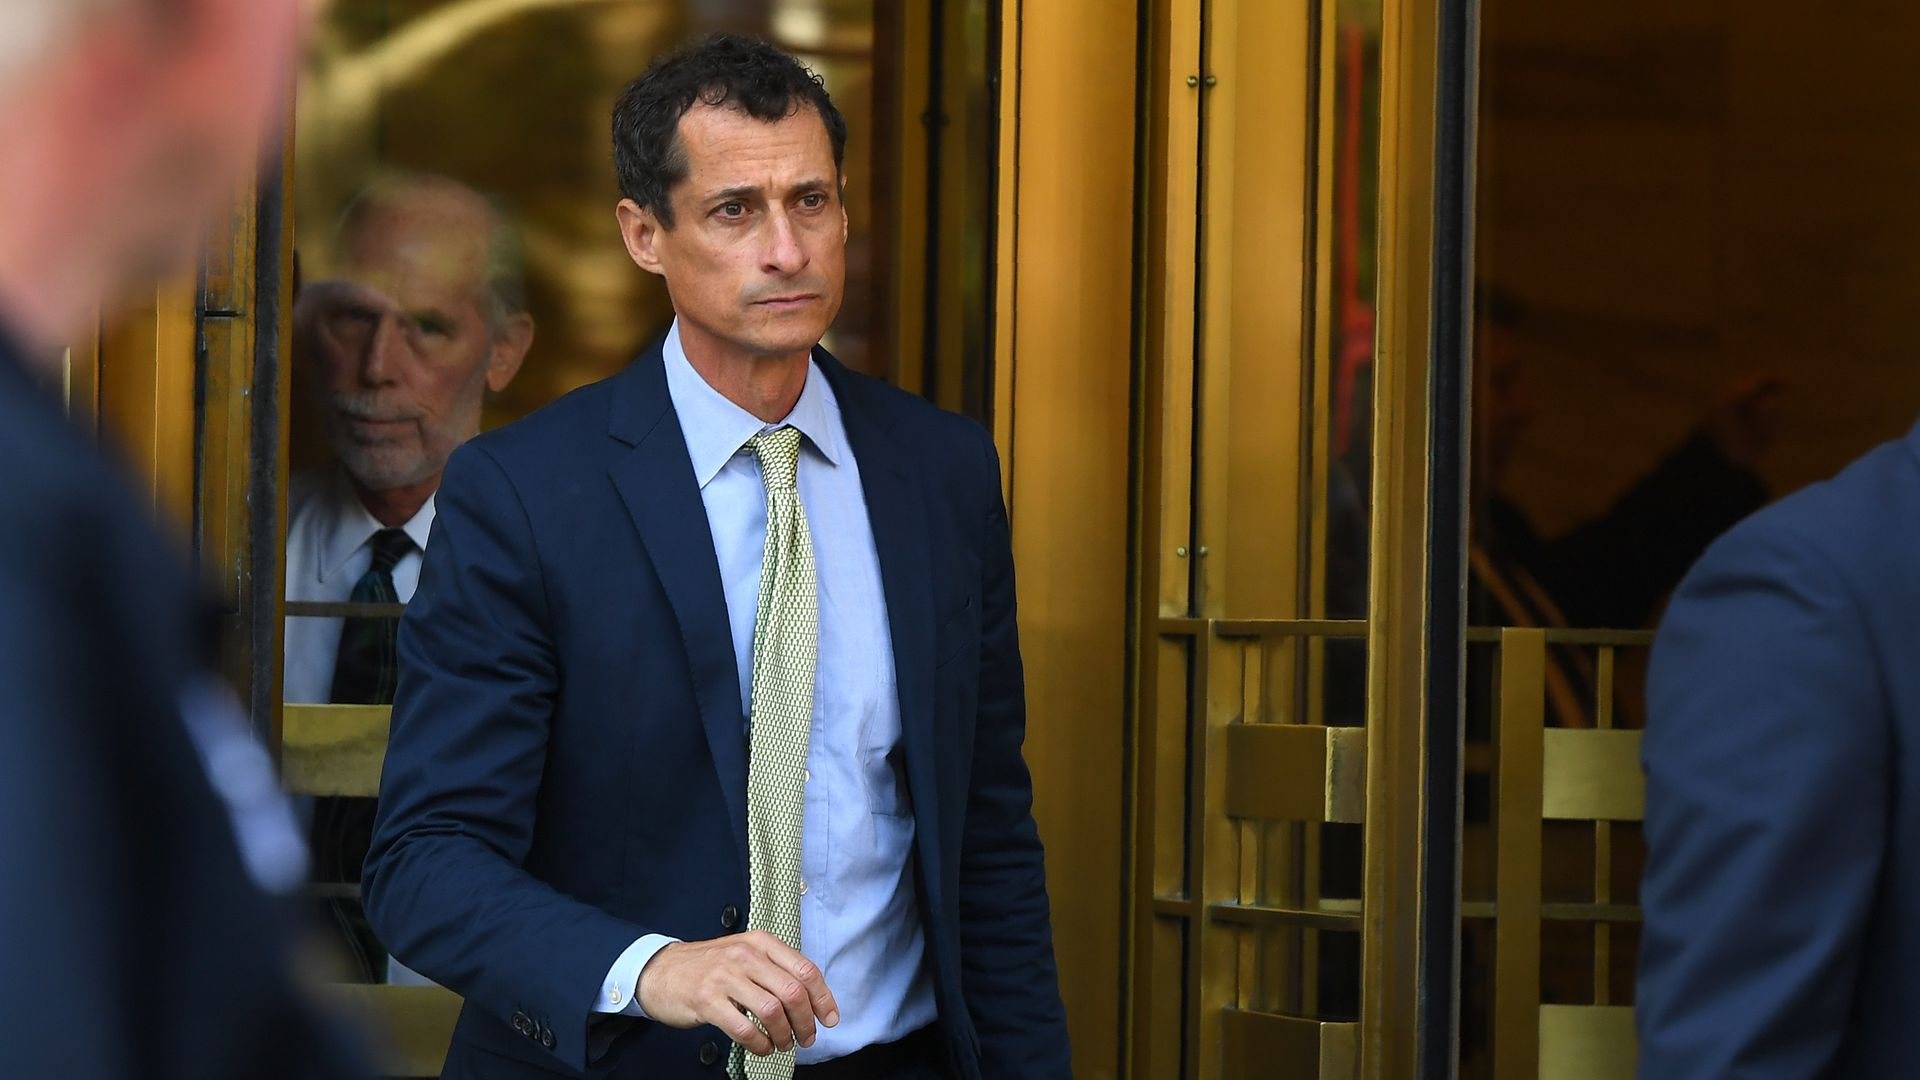 Anthony Weiner, a former Democratic congressman